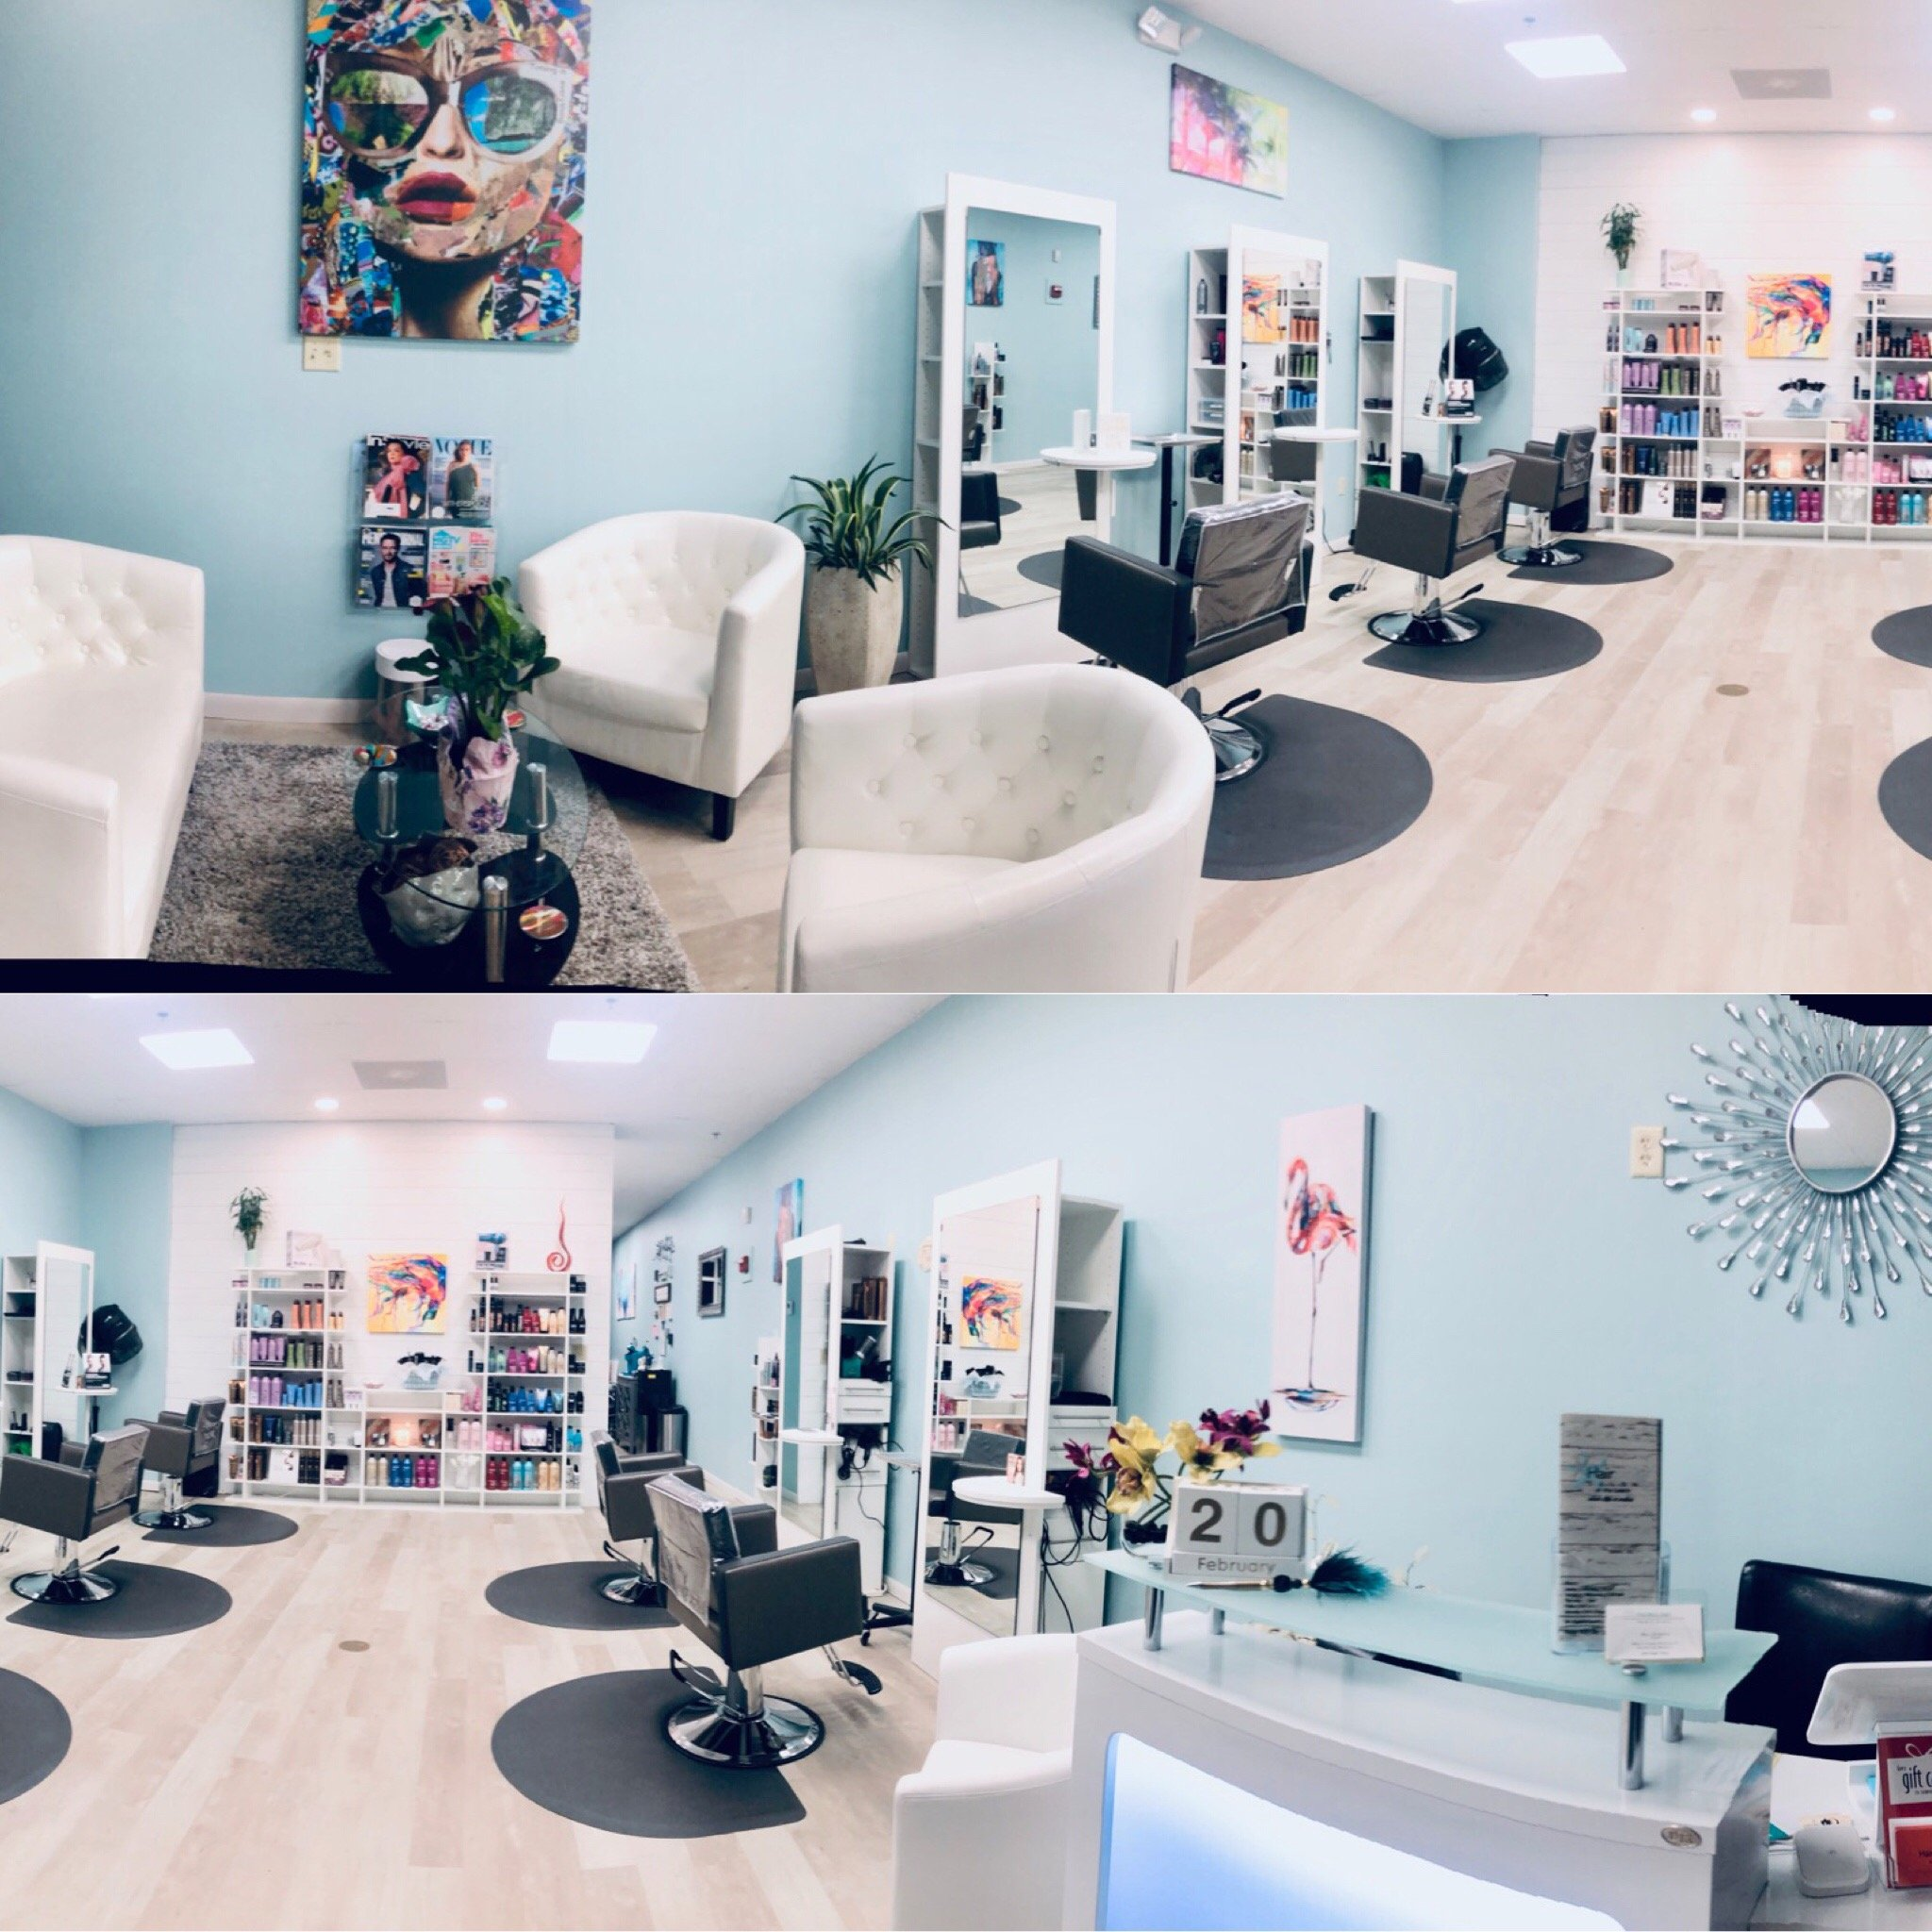 How To Pick the Right Salon in Panama City Beach, Florida